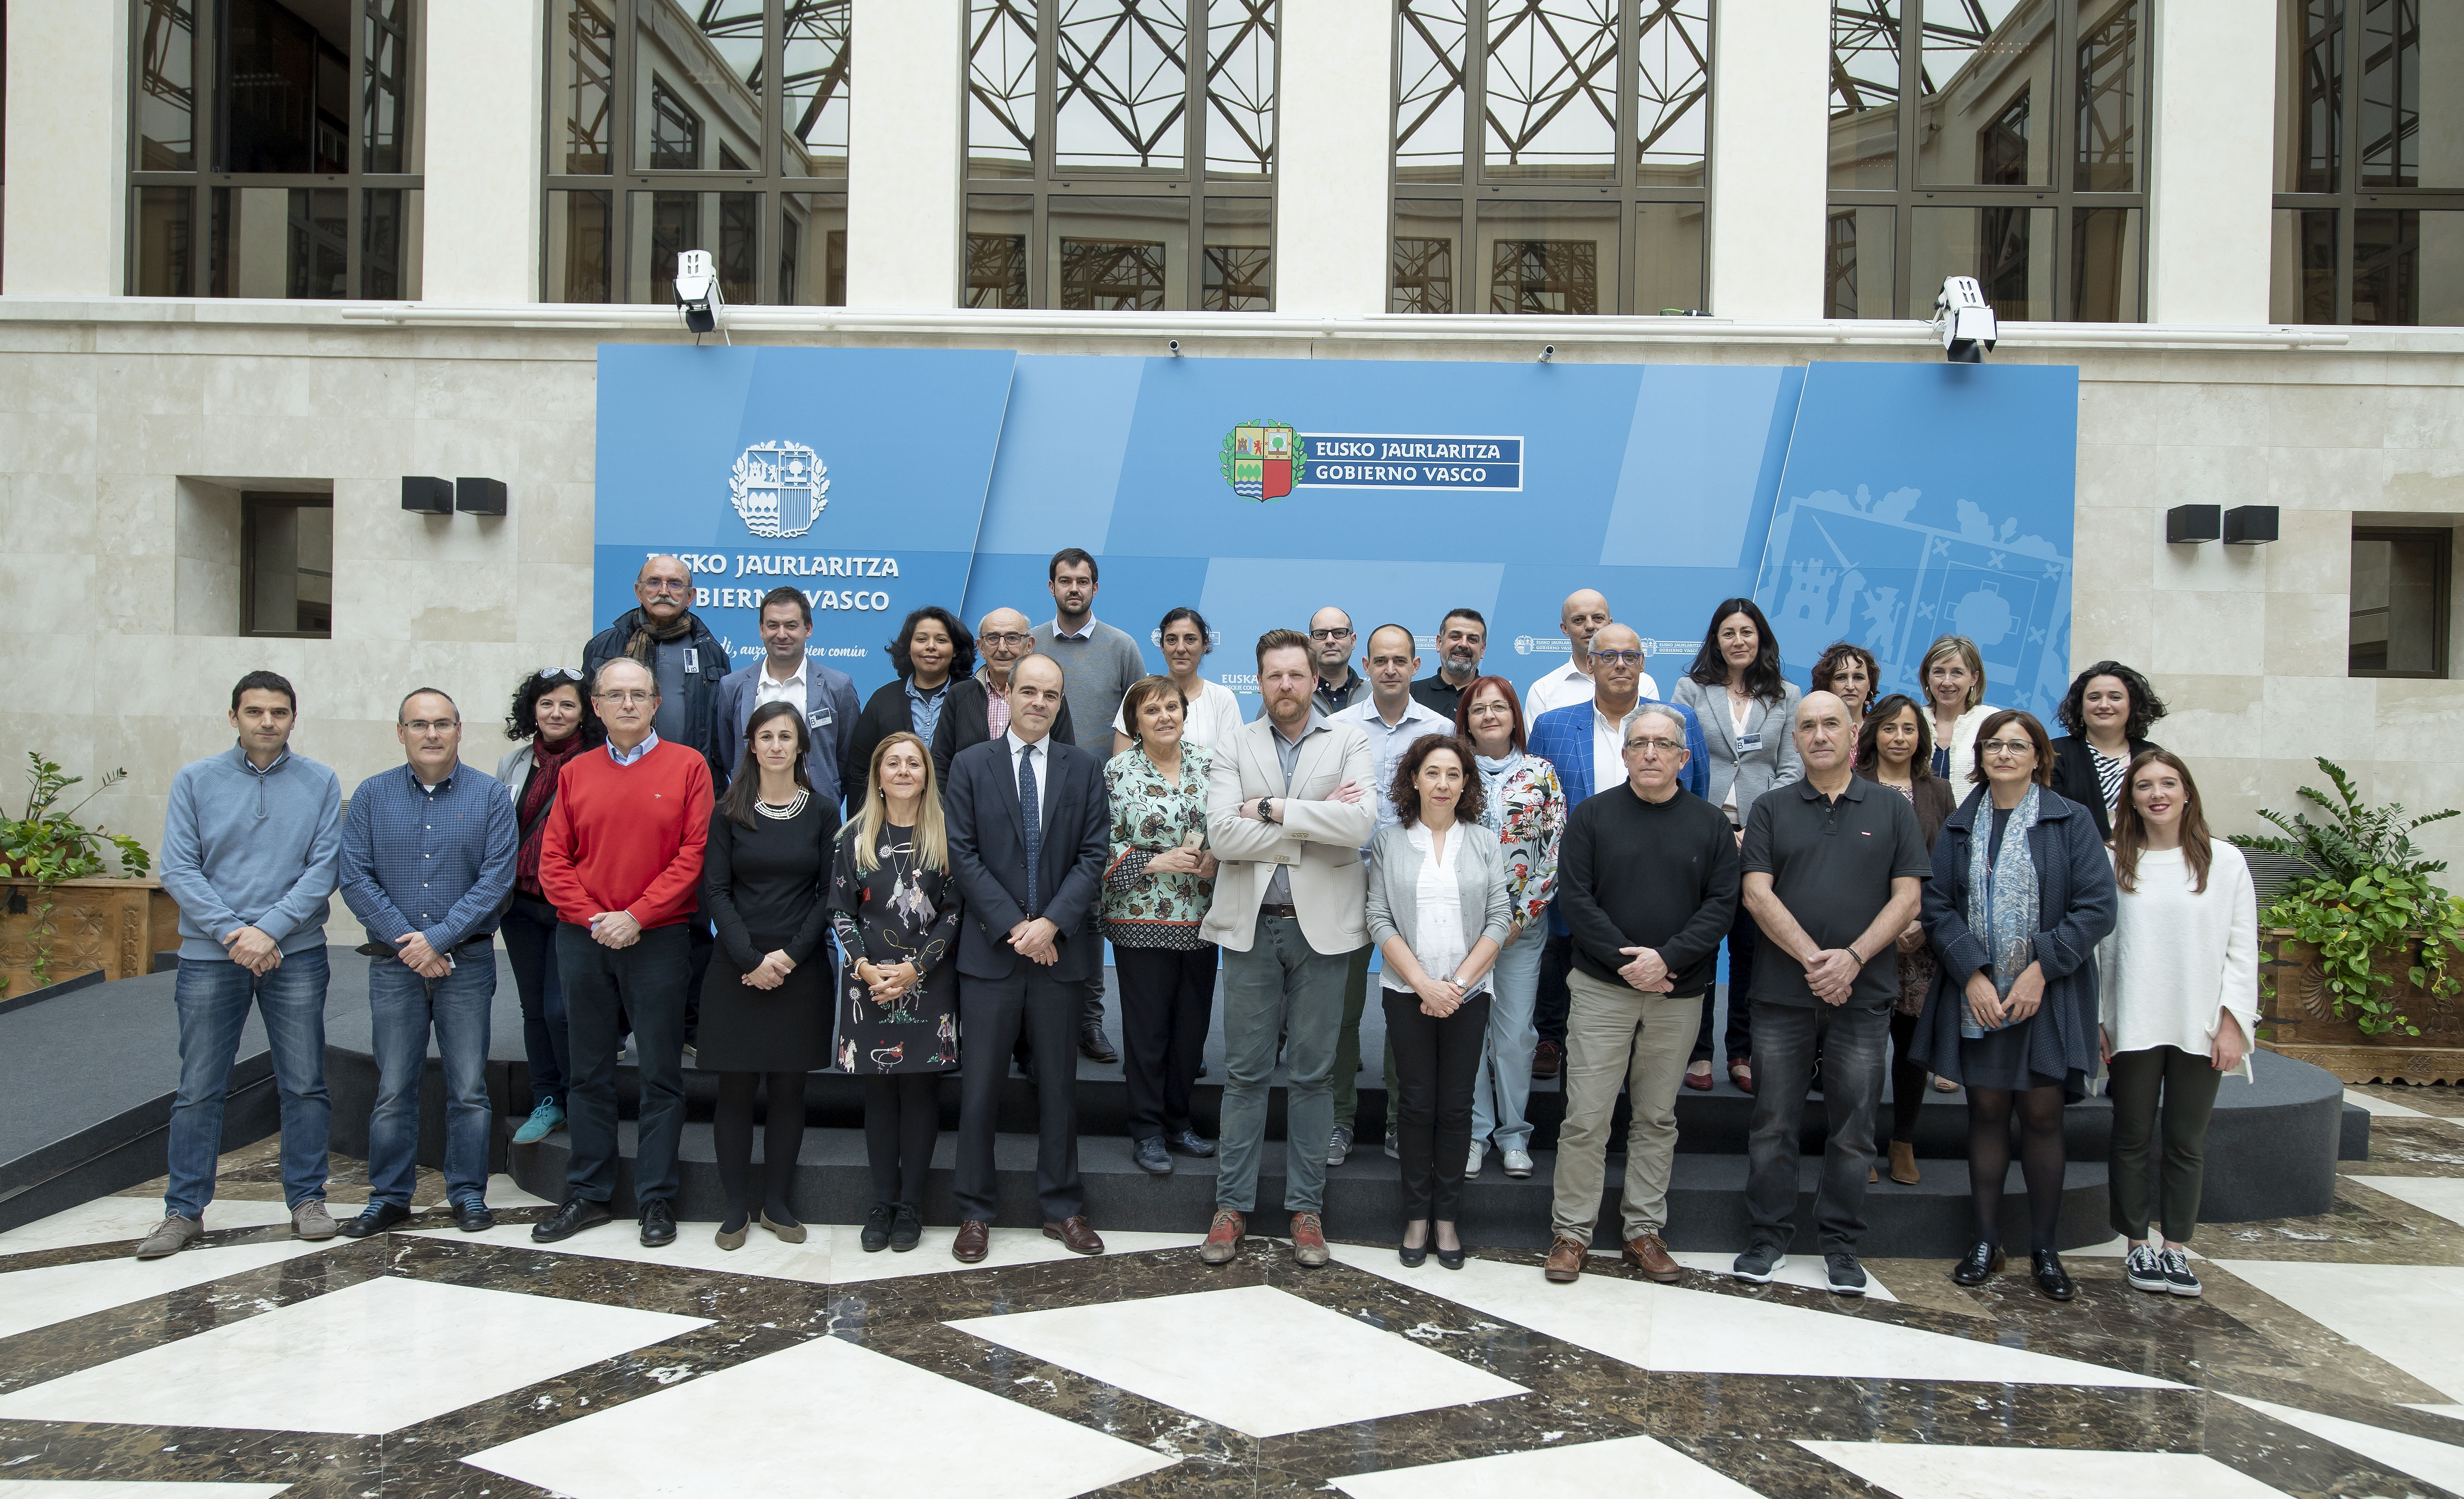 Las instituciones vascas y la sociedad civil se reúnen para la co-creación del Plan de Acción d  (Open Government Partnership – OGP  Euskadi)